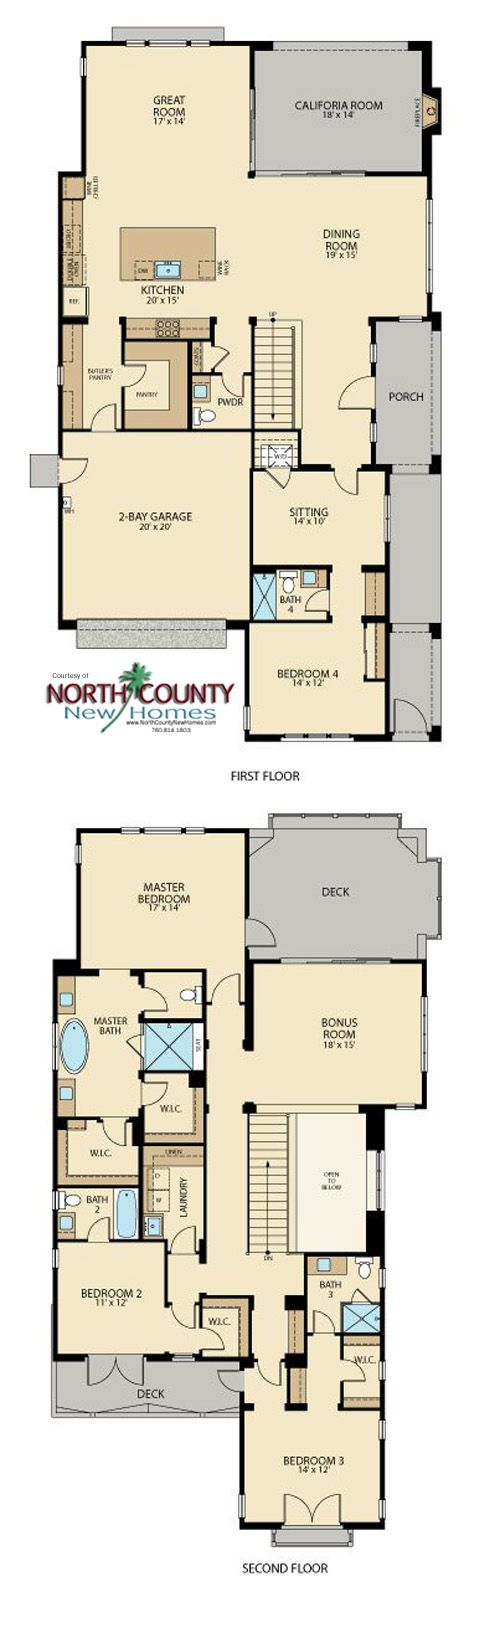 308 best new home floor plans in north county san diego images on new homes in carmel valley san diego in pacific highlands ranch at sterling sterling new home floor plans